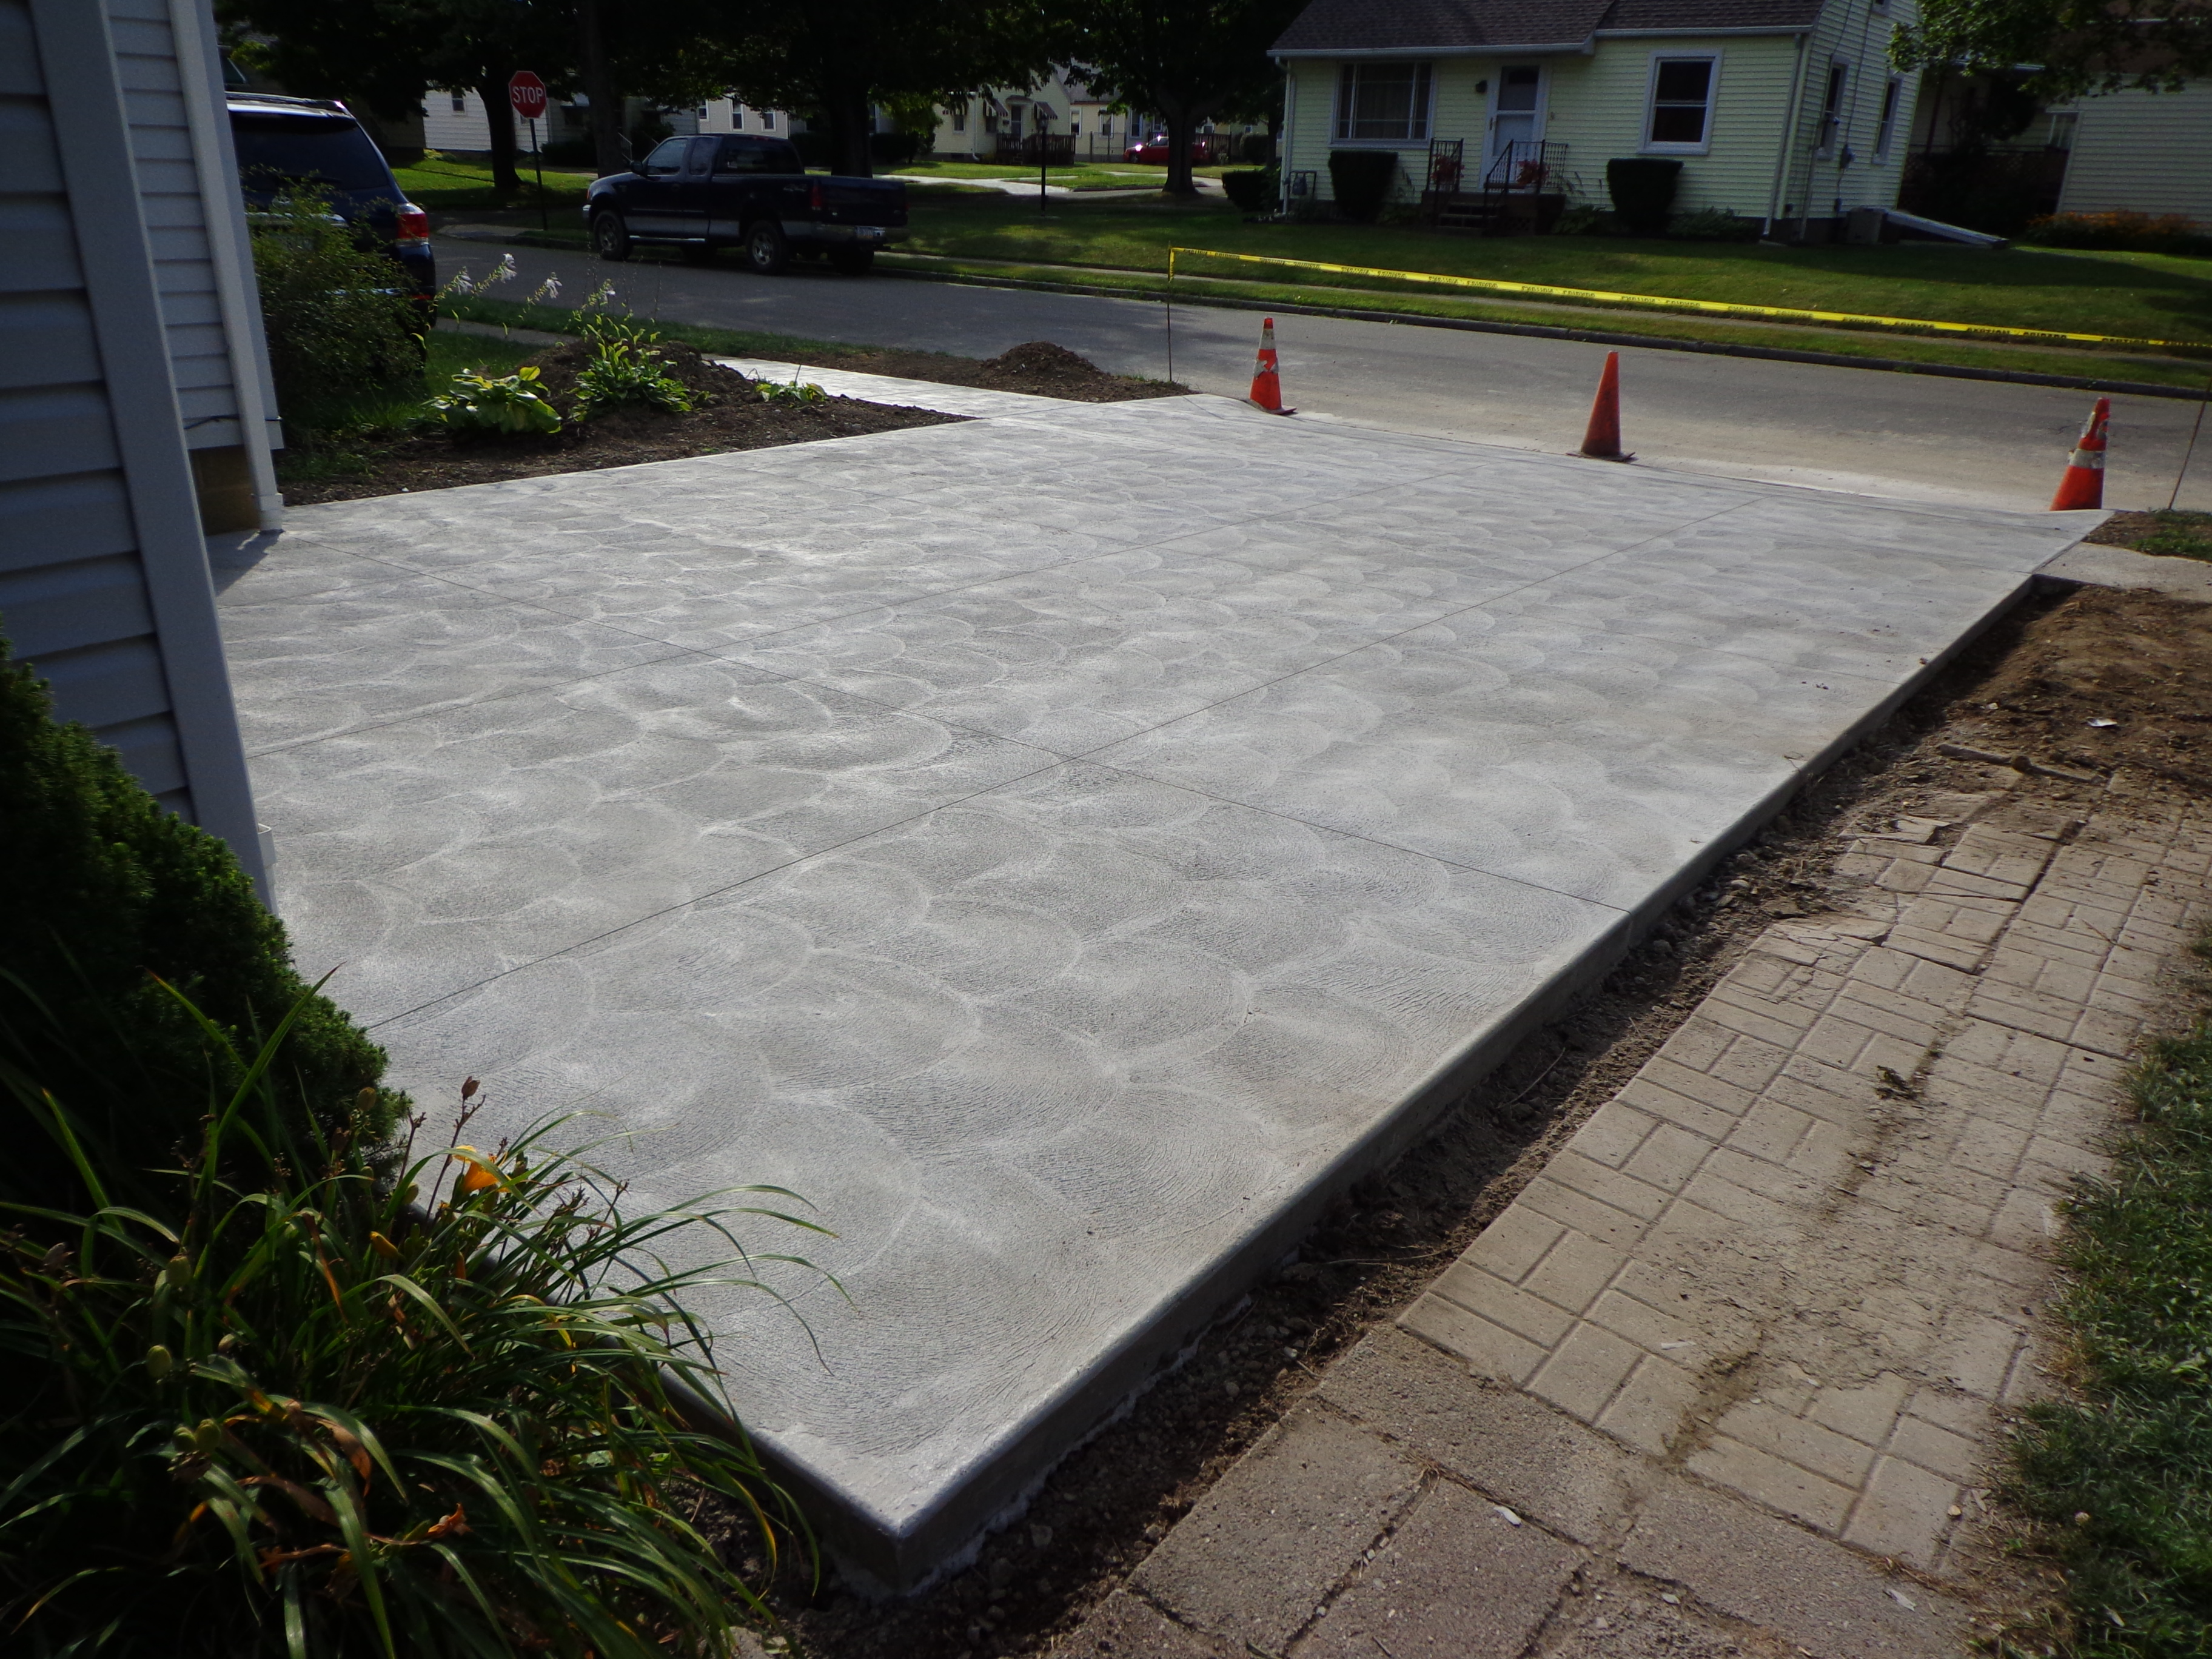 The driveway project kerryd away driveway day 3 concrete pad solutioingenieria Images